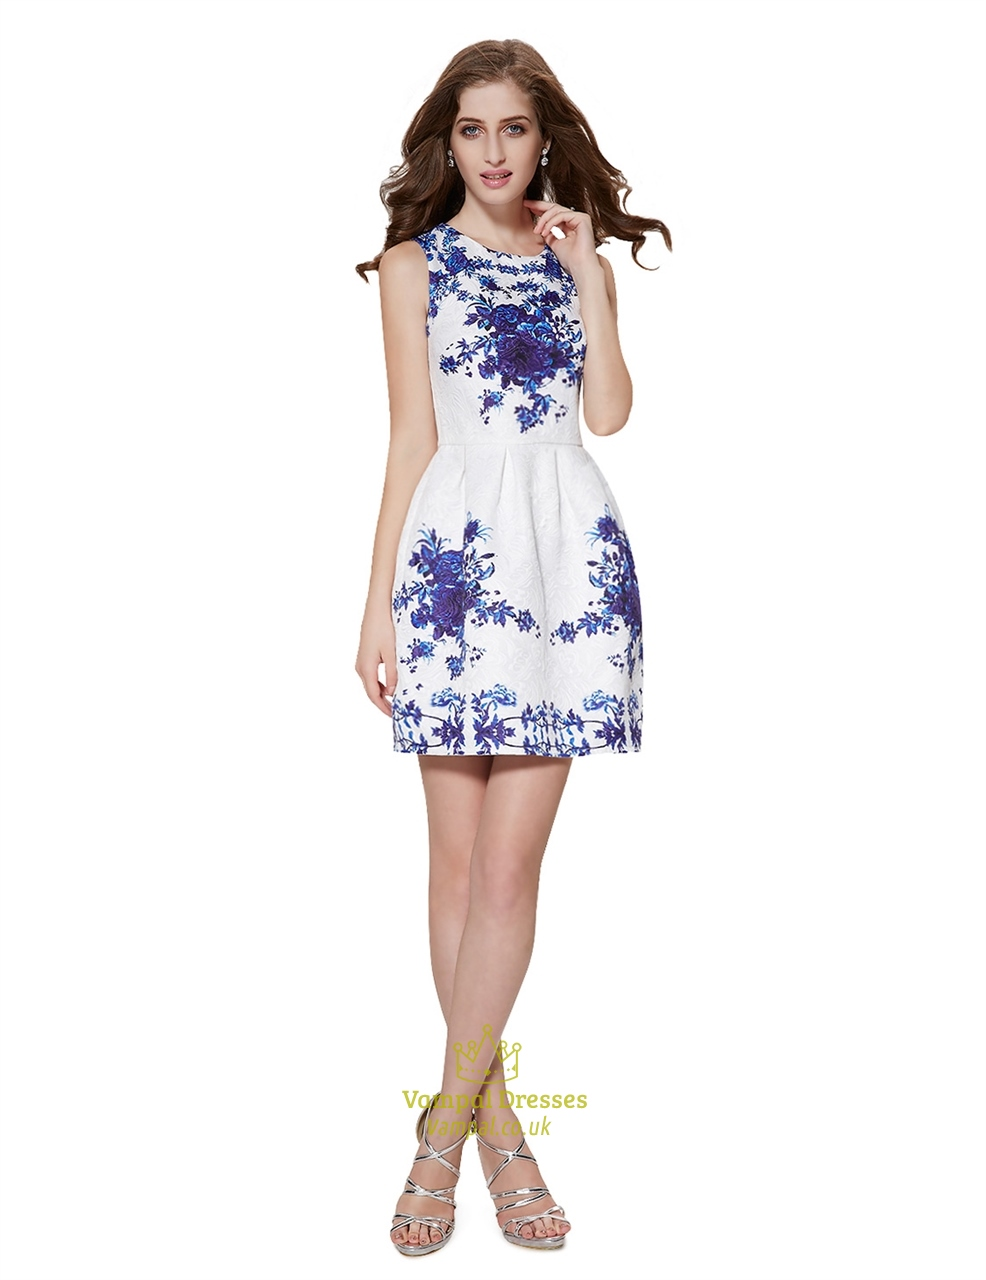 f9cb82faa635 White Sleeveless Fit And Flare Skater Dress With Blue Floral Print SKU  -NW1549